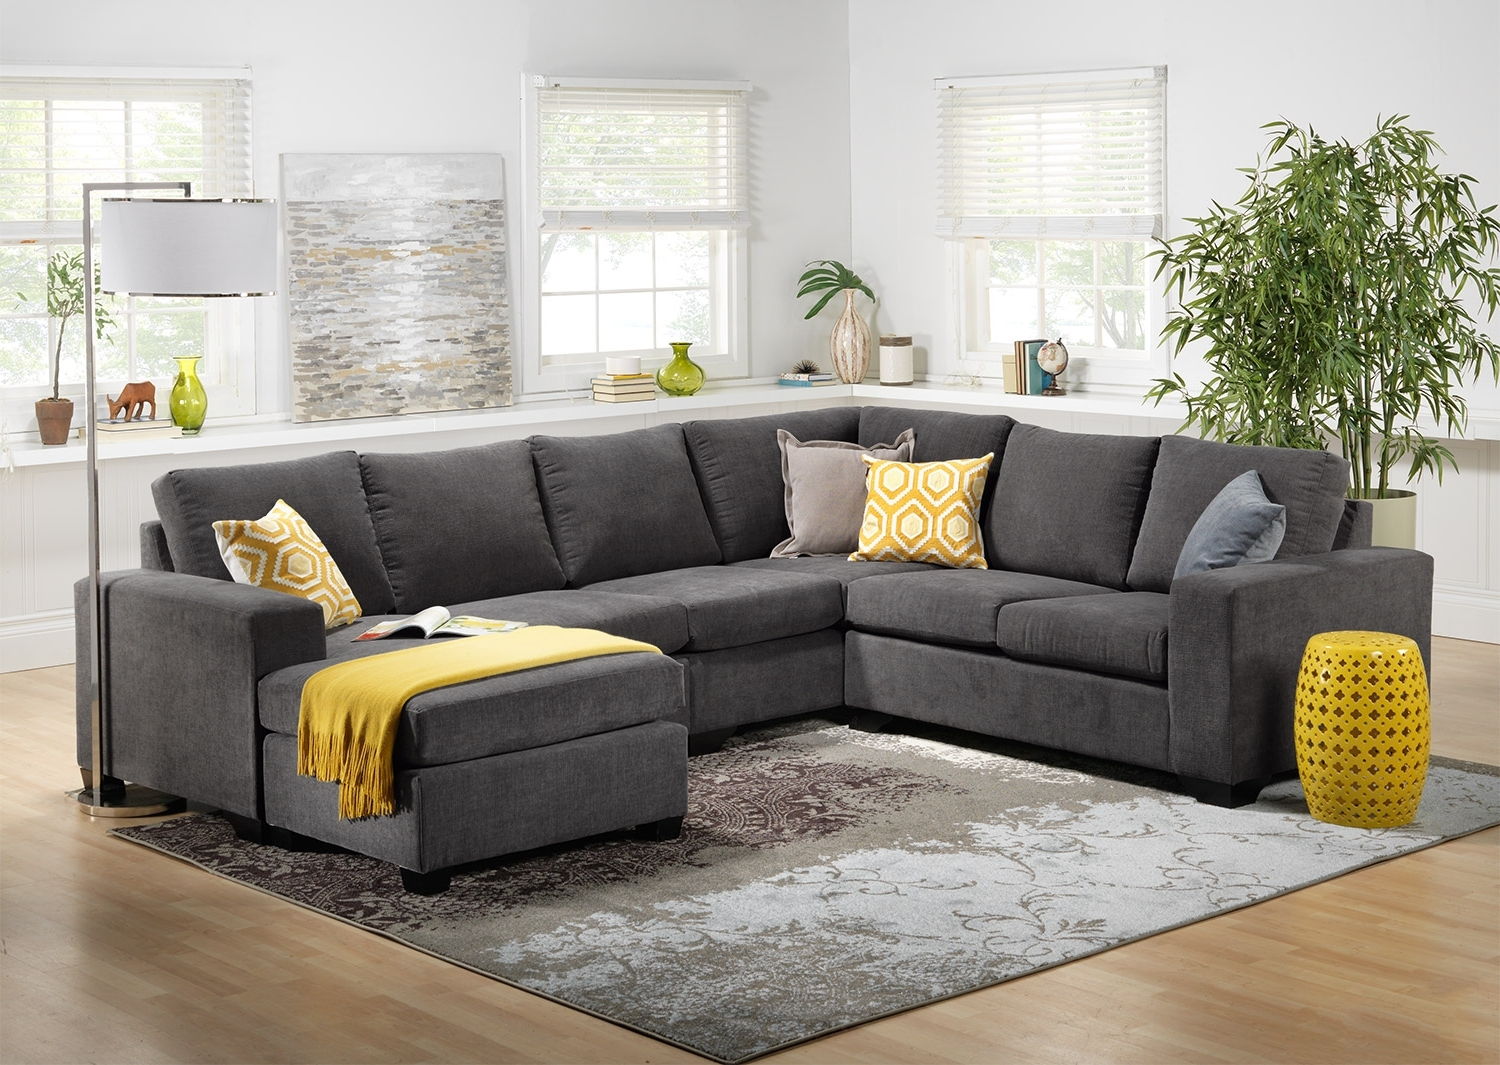 Used Sectional Sofas For Sale Edmonton Best Home Furniture Ideas In Current Sectional Sofas At Edmonton (View 13 of 15)